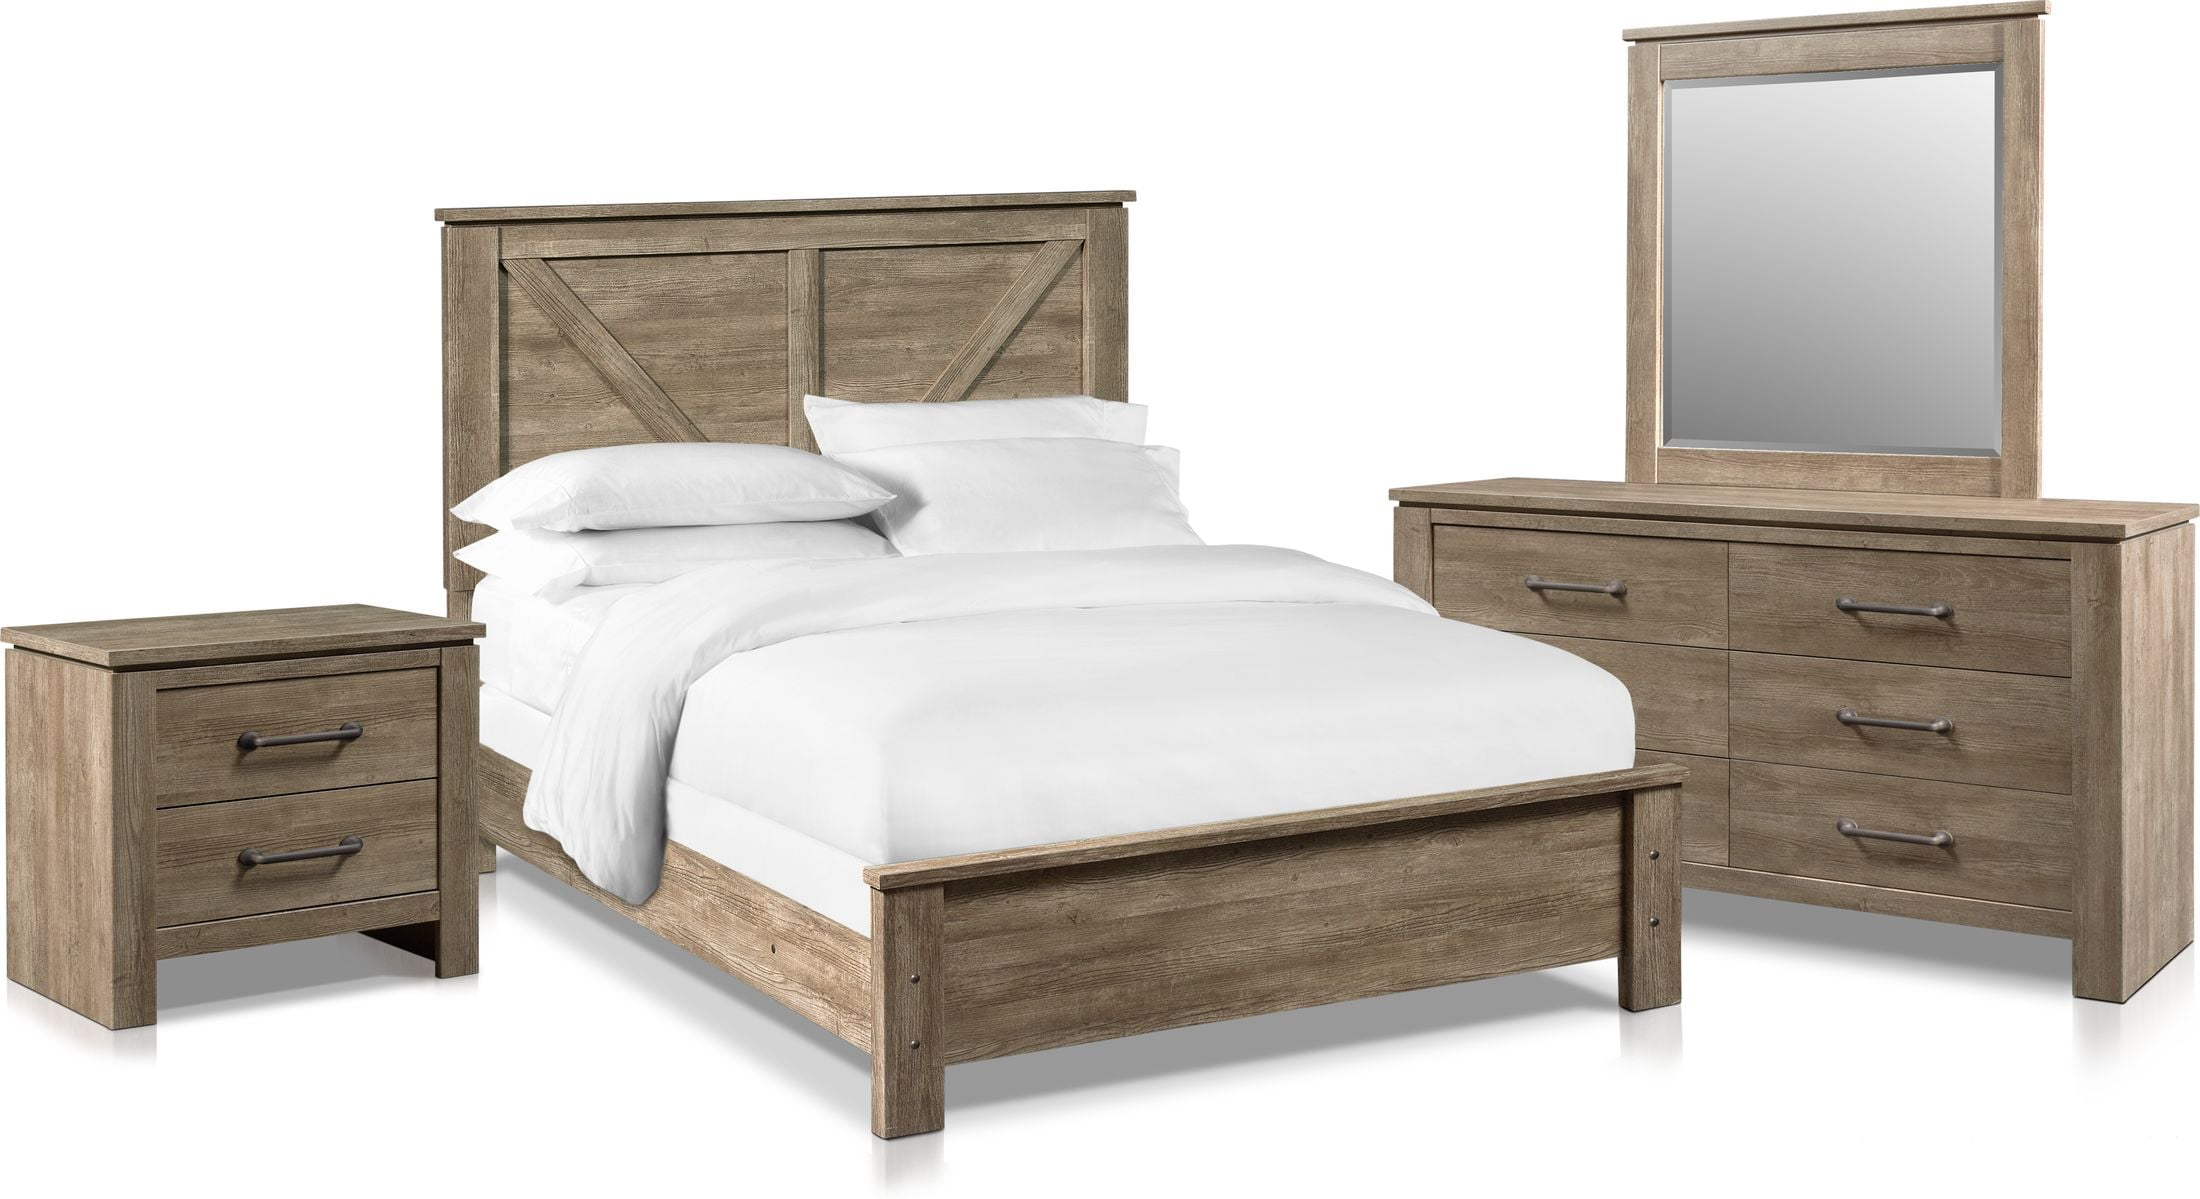 Bedroom Furniture - Perry 6-Piece Bedroom Set with Nightstand, Dresser and Mirror